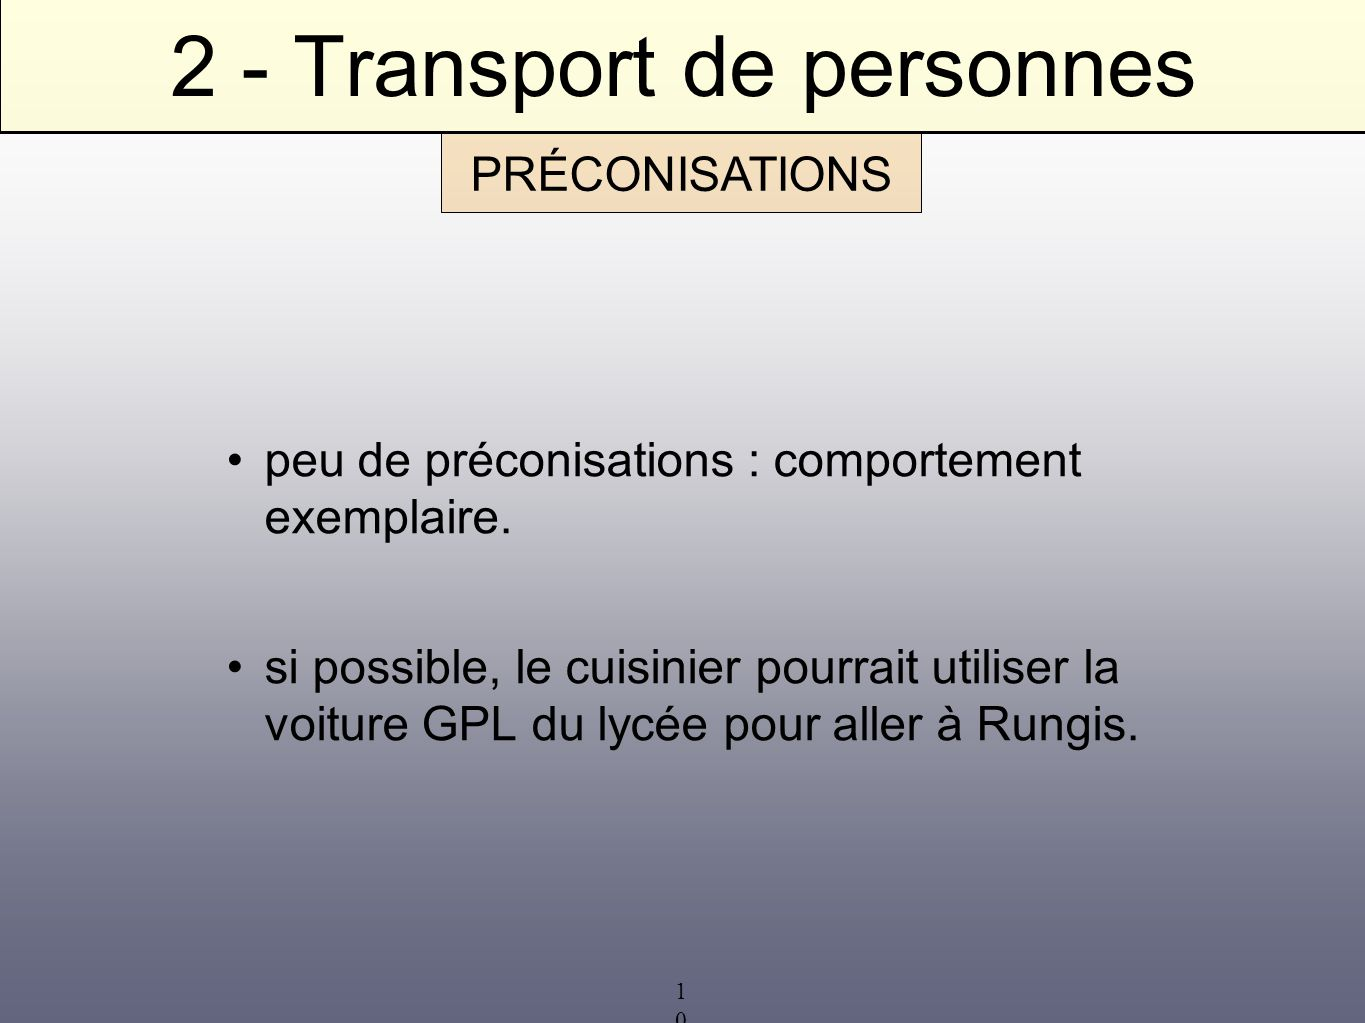 2 - Transport de personnes